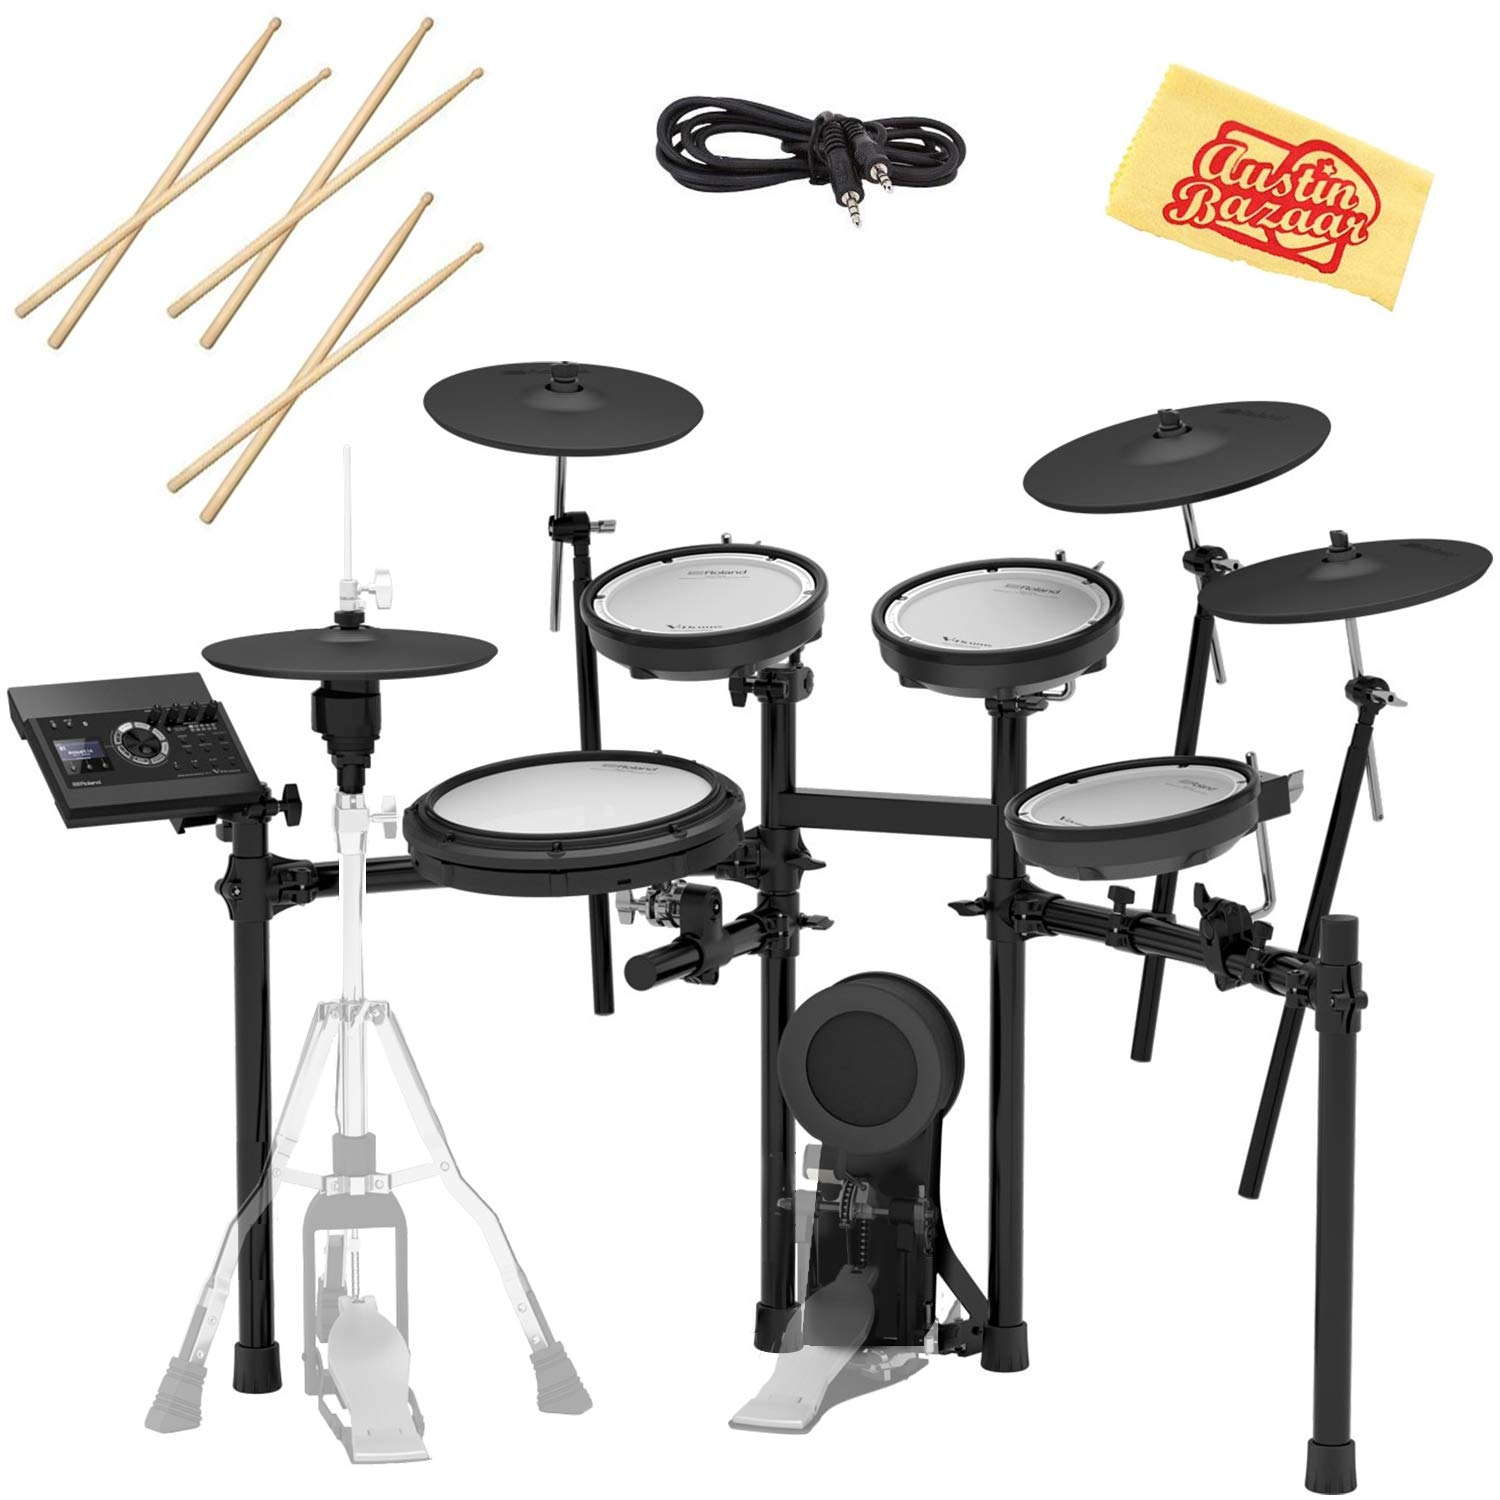 Roland TD-17KVX Electronic Drum Set Bundle with 3 Pairs of Sticks, Audio Cable, and Austin Bazaar Polishing Cloth by Roland